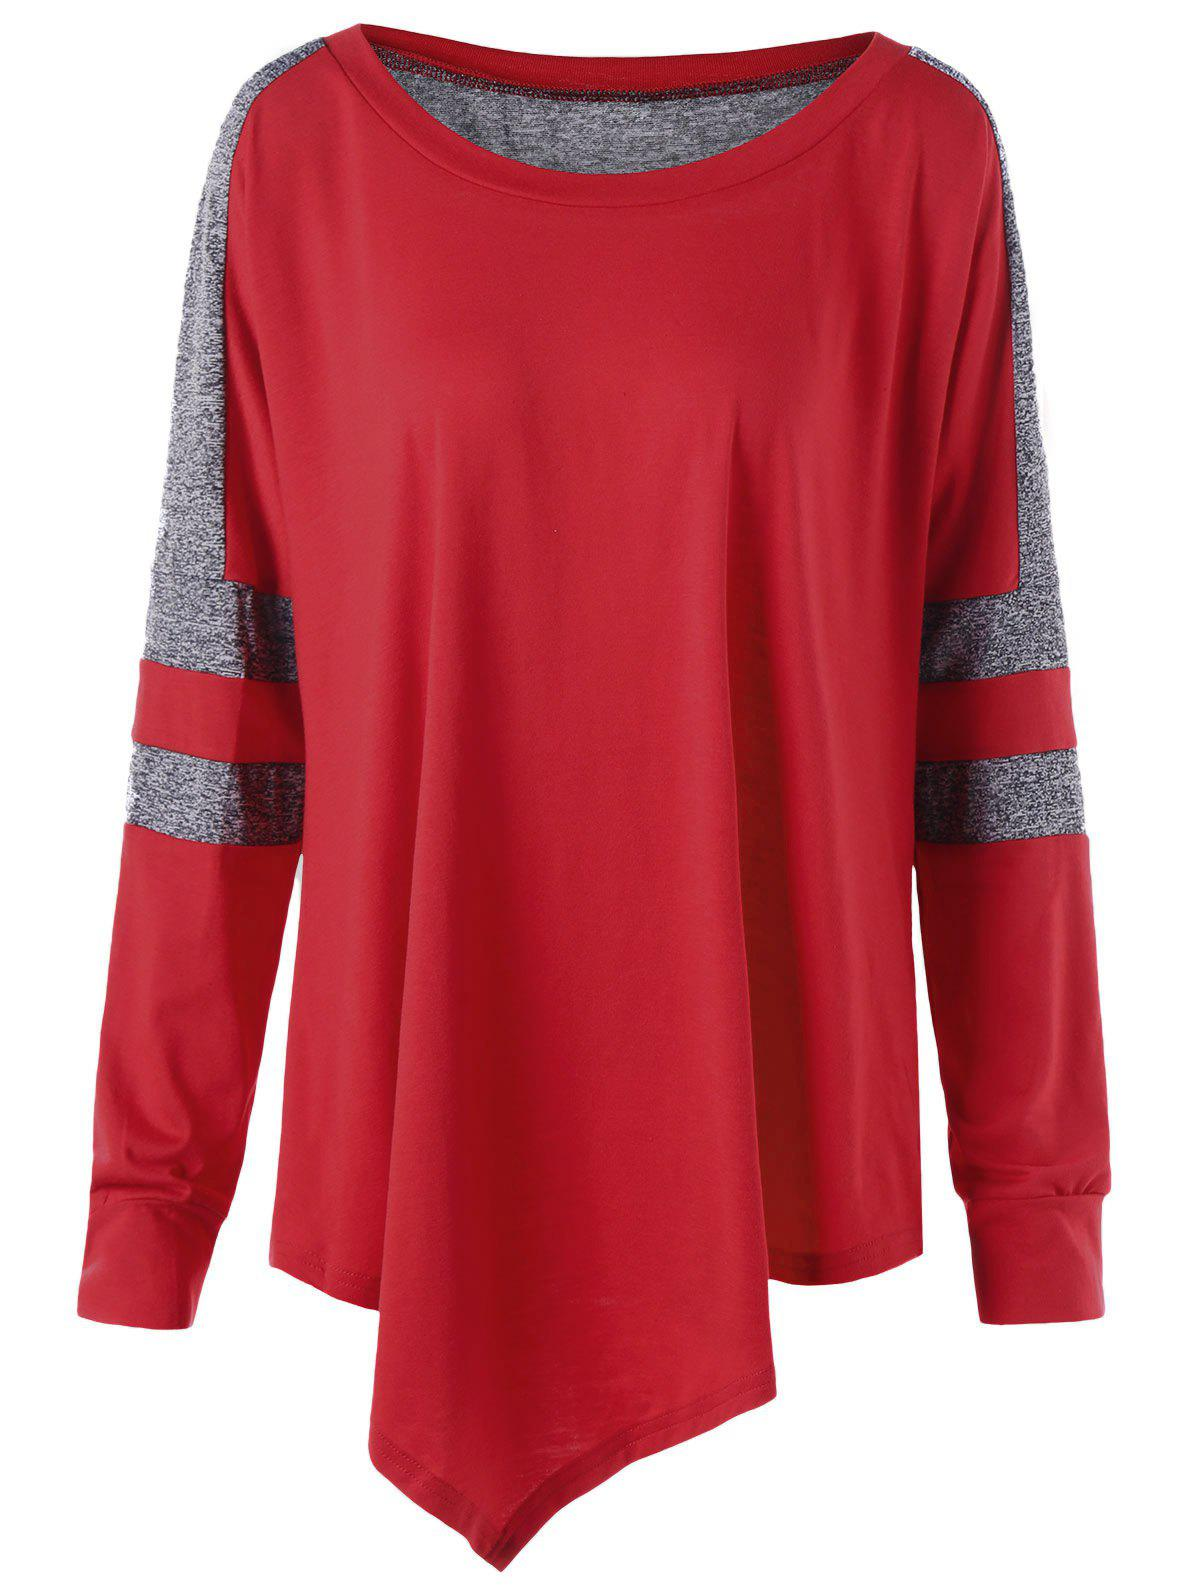 Plus Size Pullover Asymmetric Long Sleeve SweatshirtWOMEN<br><br>Size: 5XL; Color: RED; Material: Polyester,Spandex; Shirt Length: Long; Sleeve Length: Full; Style: Casual; Pattern Style: Others; Season: Fall,Spring,Winter; Weight: 0.3300kg; Package Contents: 1 x Sweatshirt;